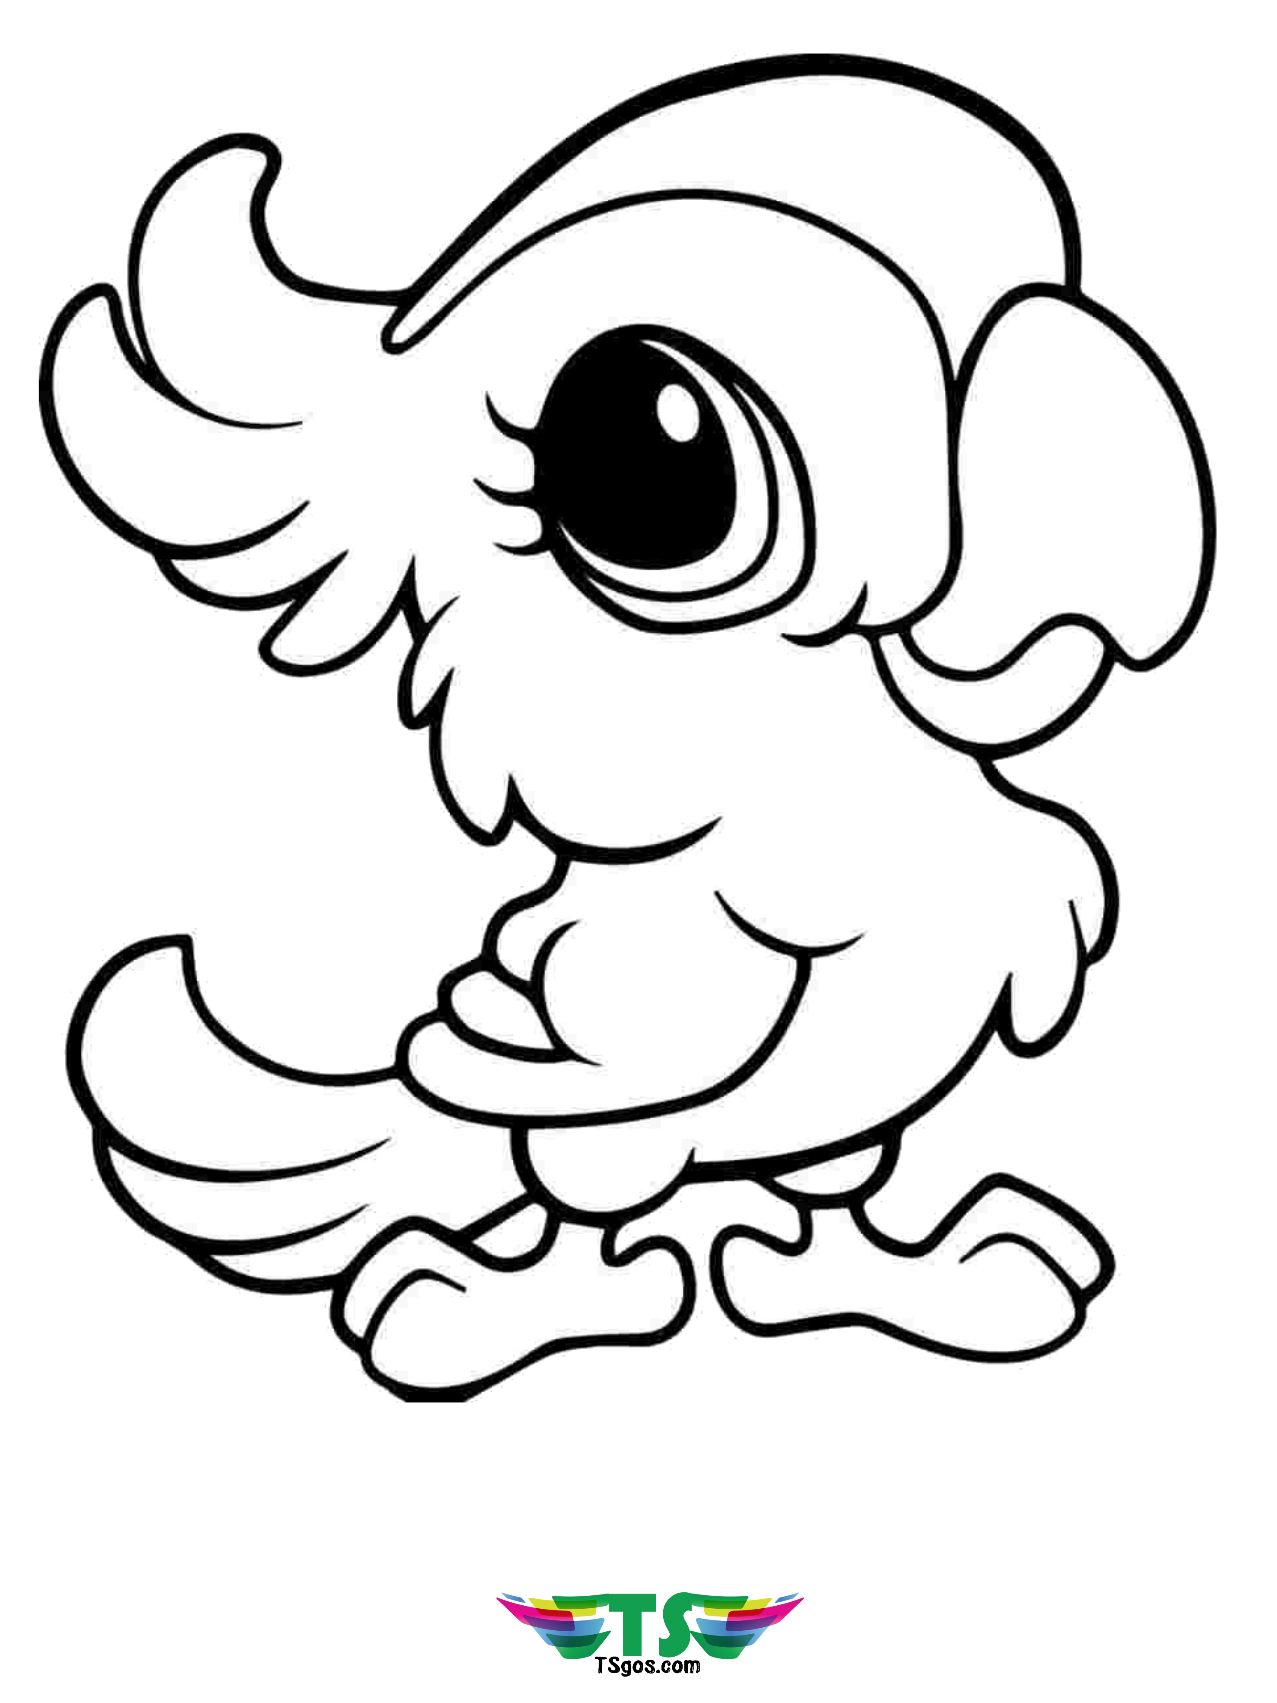 coloring cute pictures cute bird coloring page for kids tsgoscom coloring pictures cute